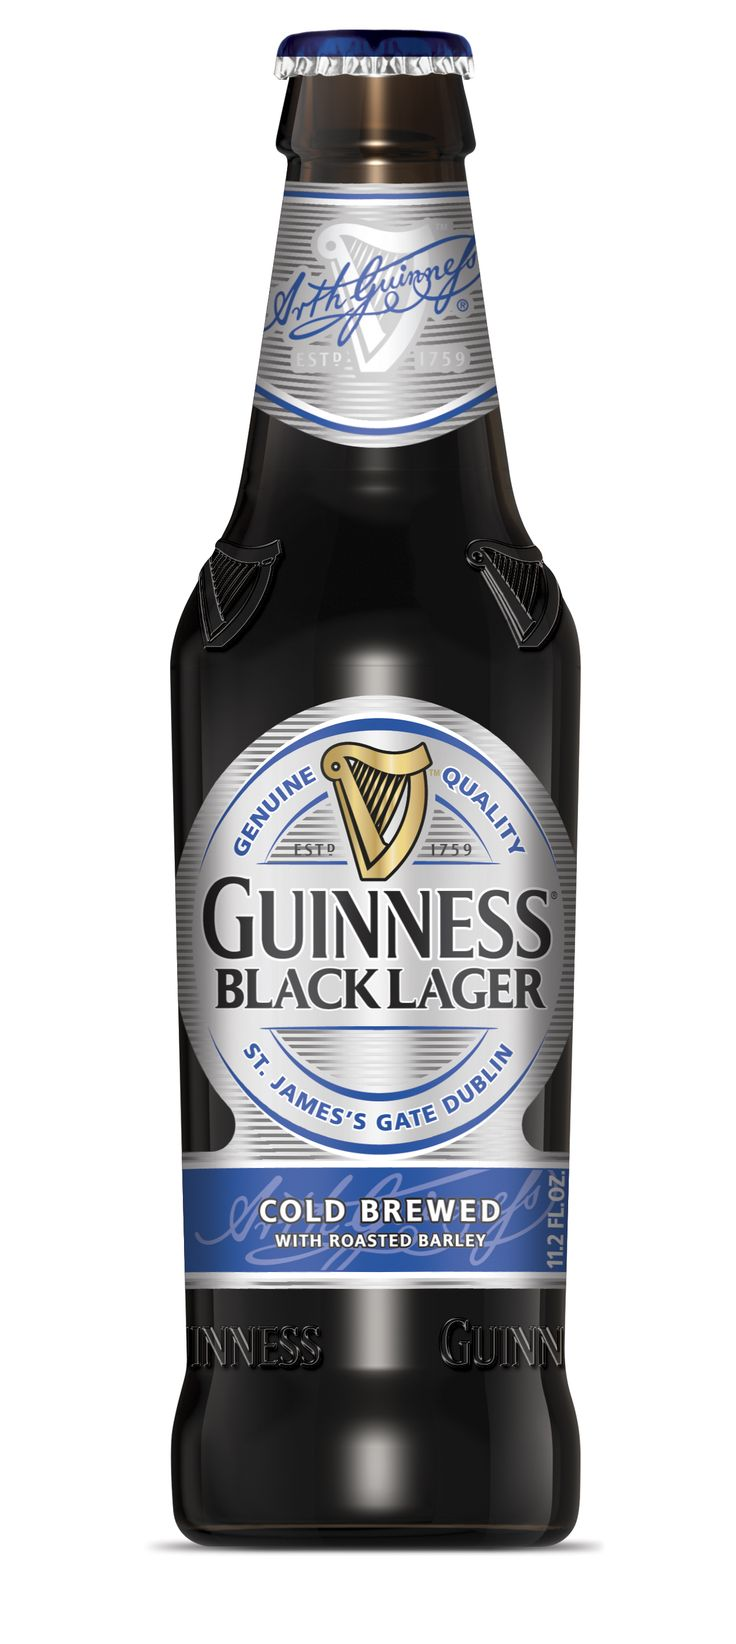 Guinness Black Lager Review #beer #guinness #reviews